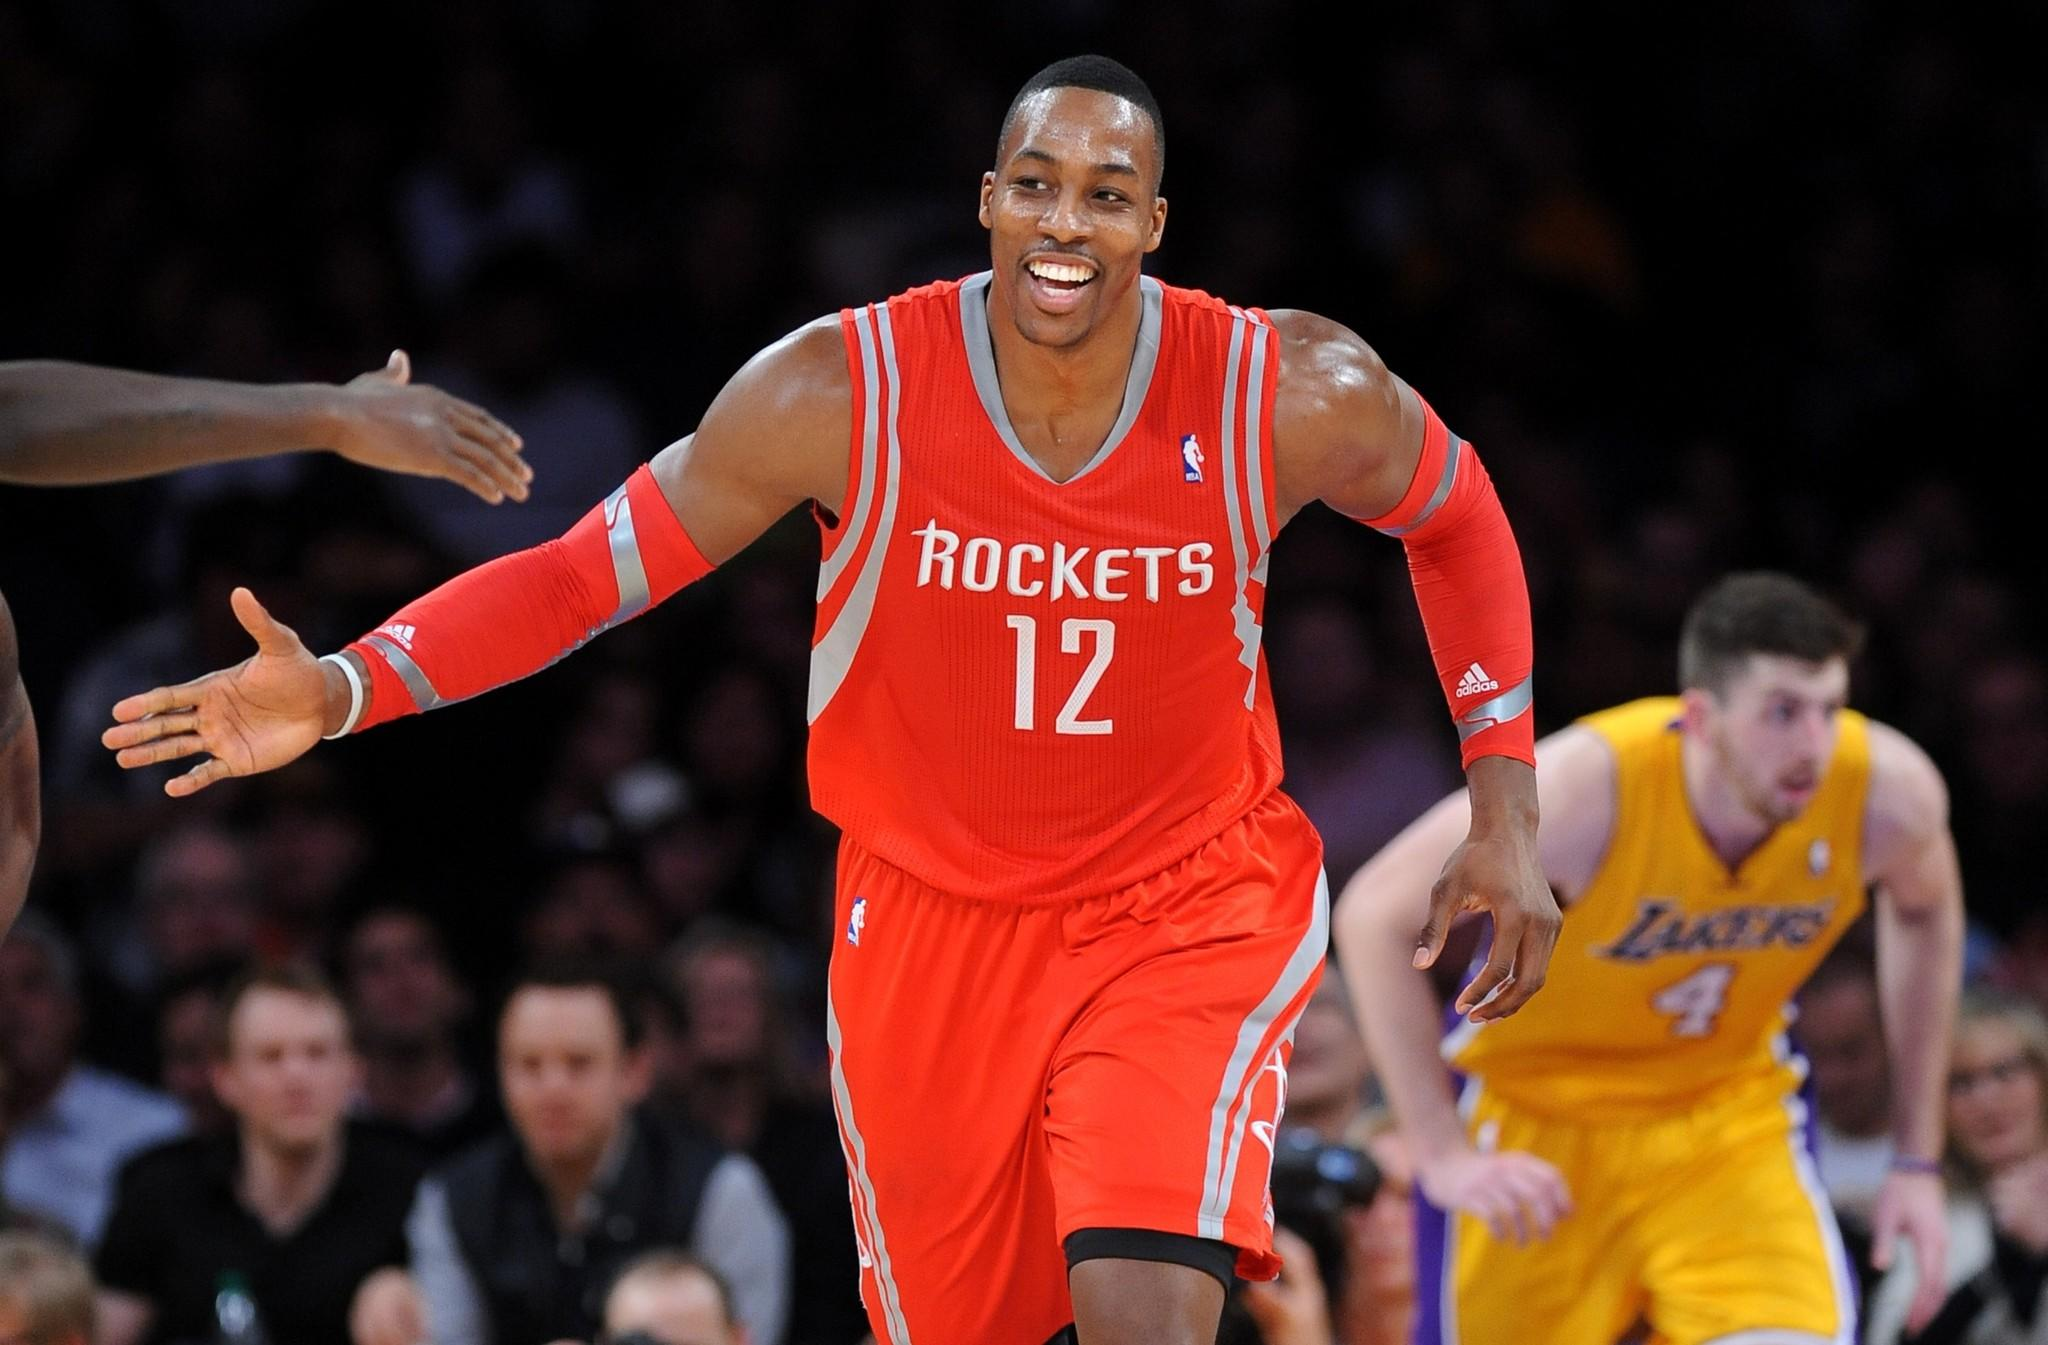 Rockets center Dwight Howard celebrates with a teammate after dunking against the Lakers.